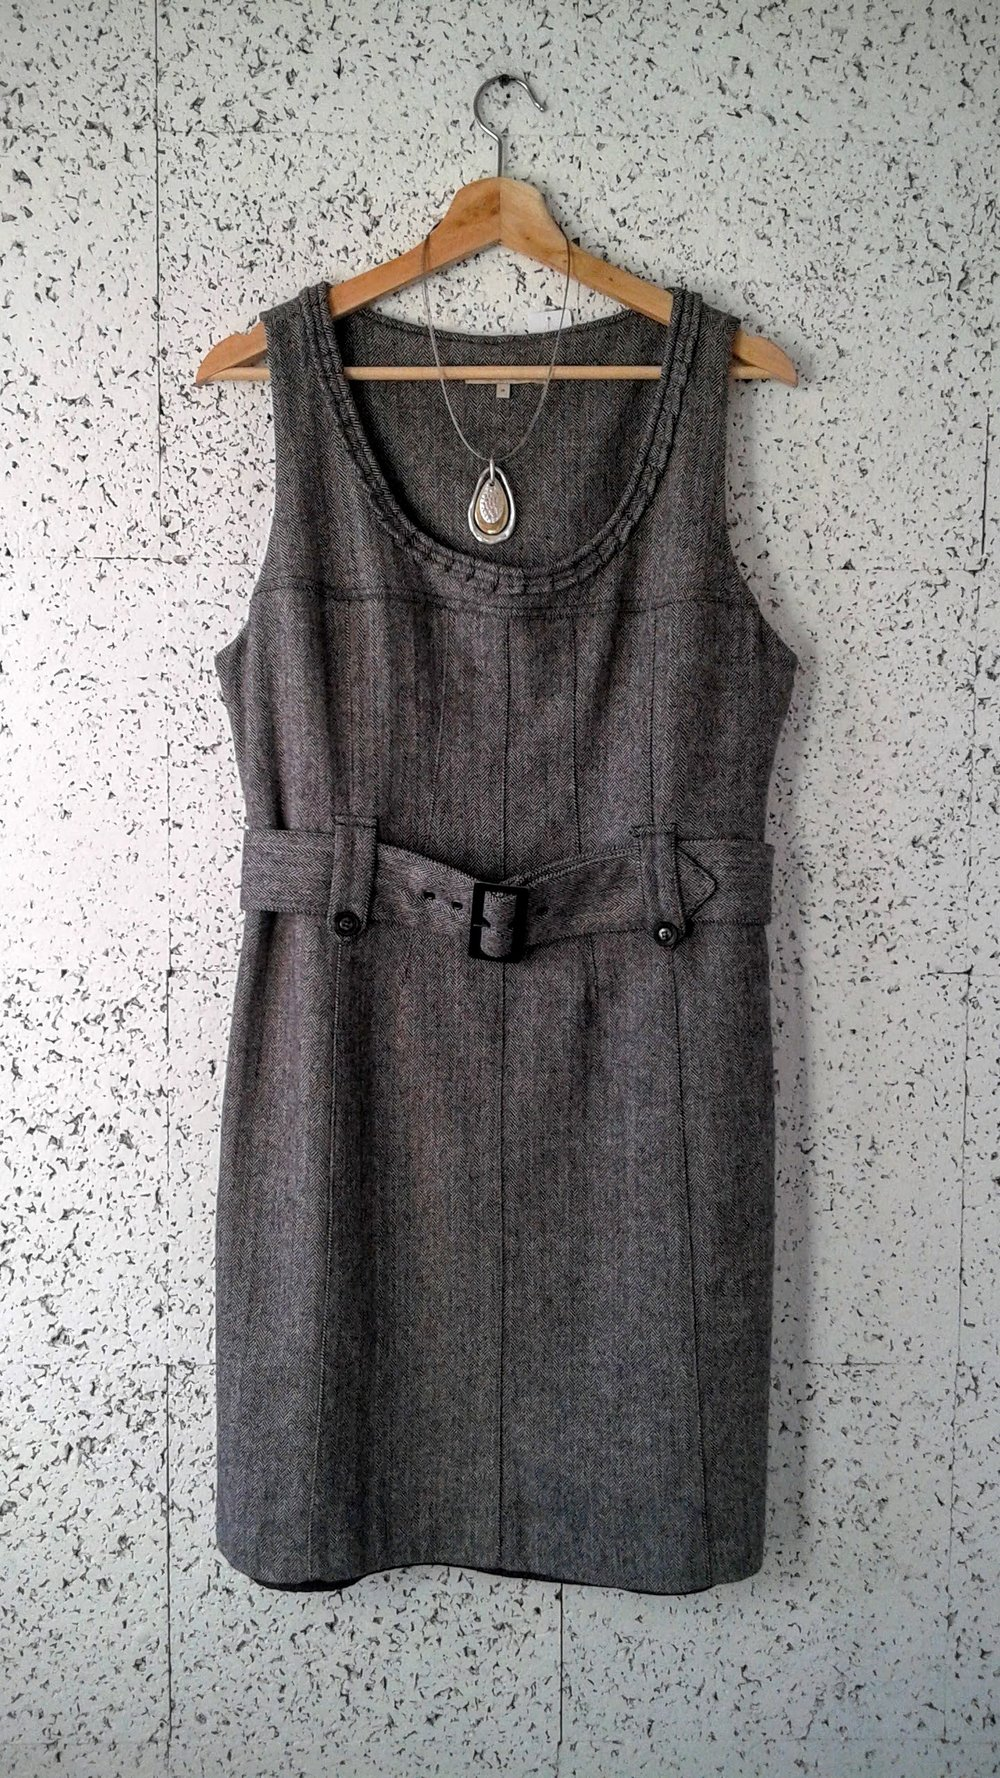 RW&Co dress, Size 10, $30; Necklace, $18